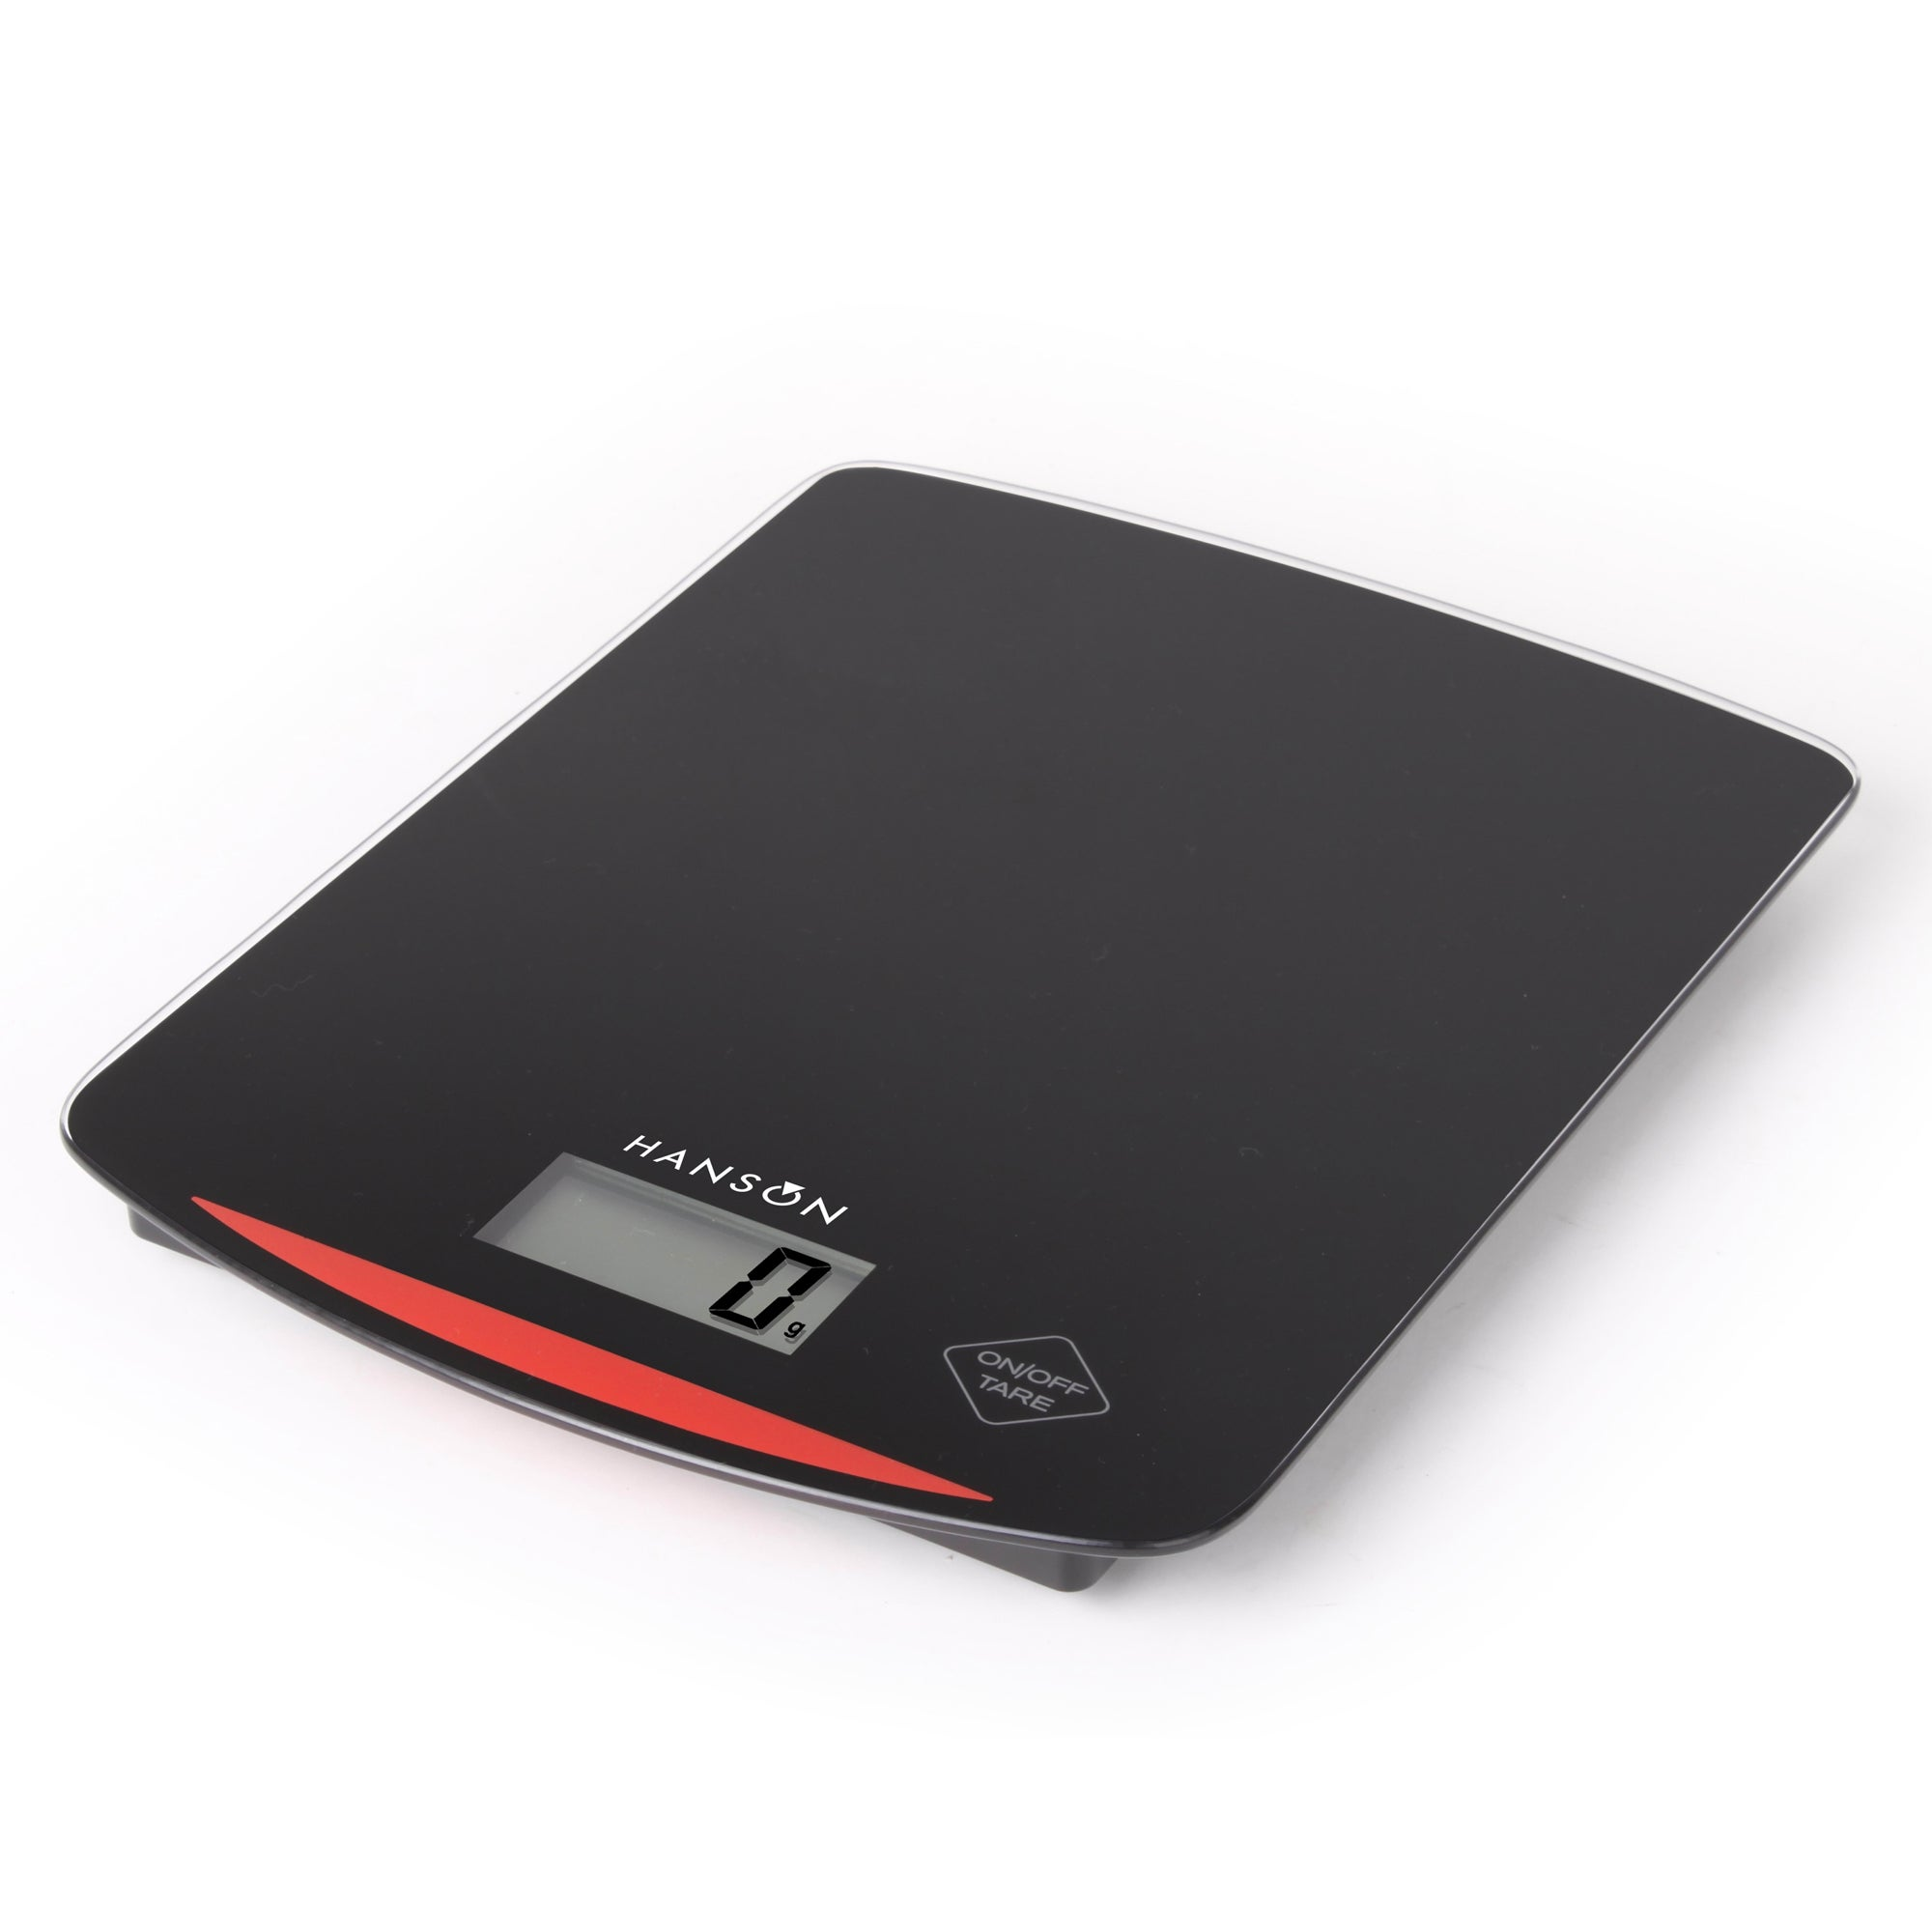 Hanson H72 10kg Electronic Glass Kitchen Scale